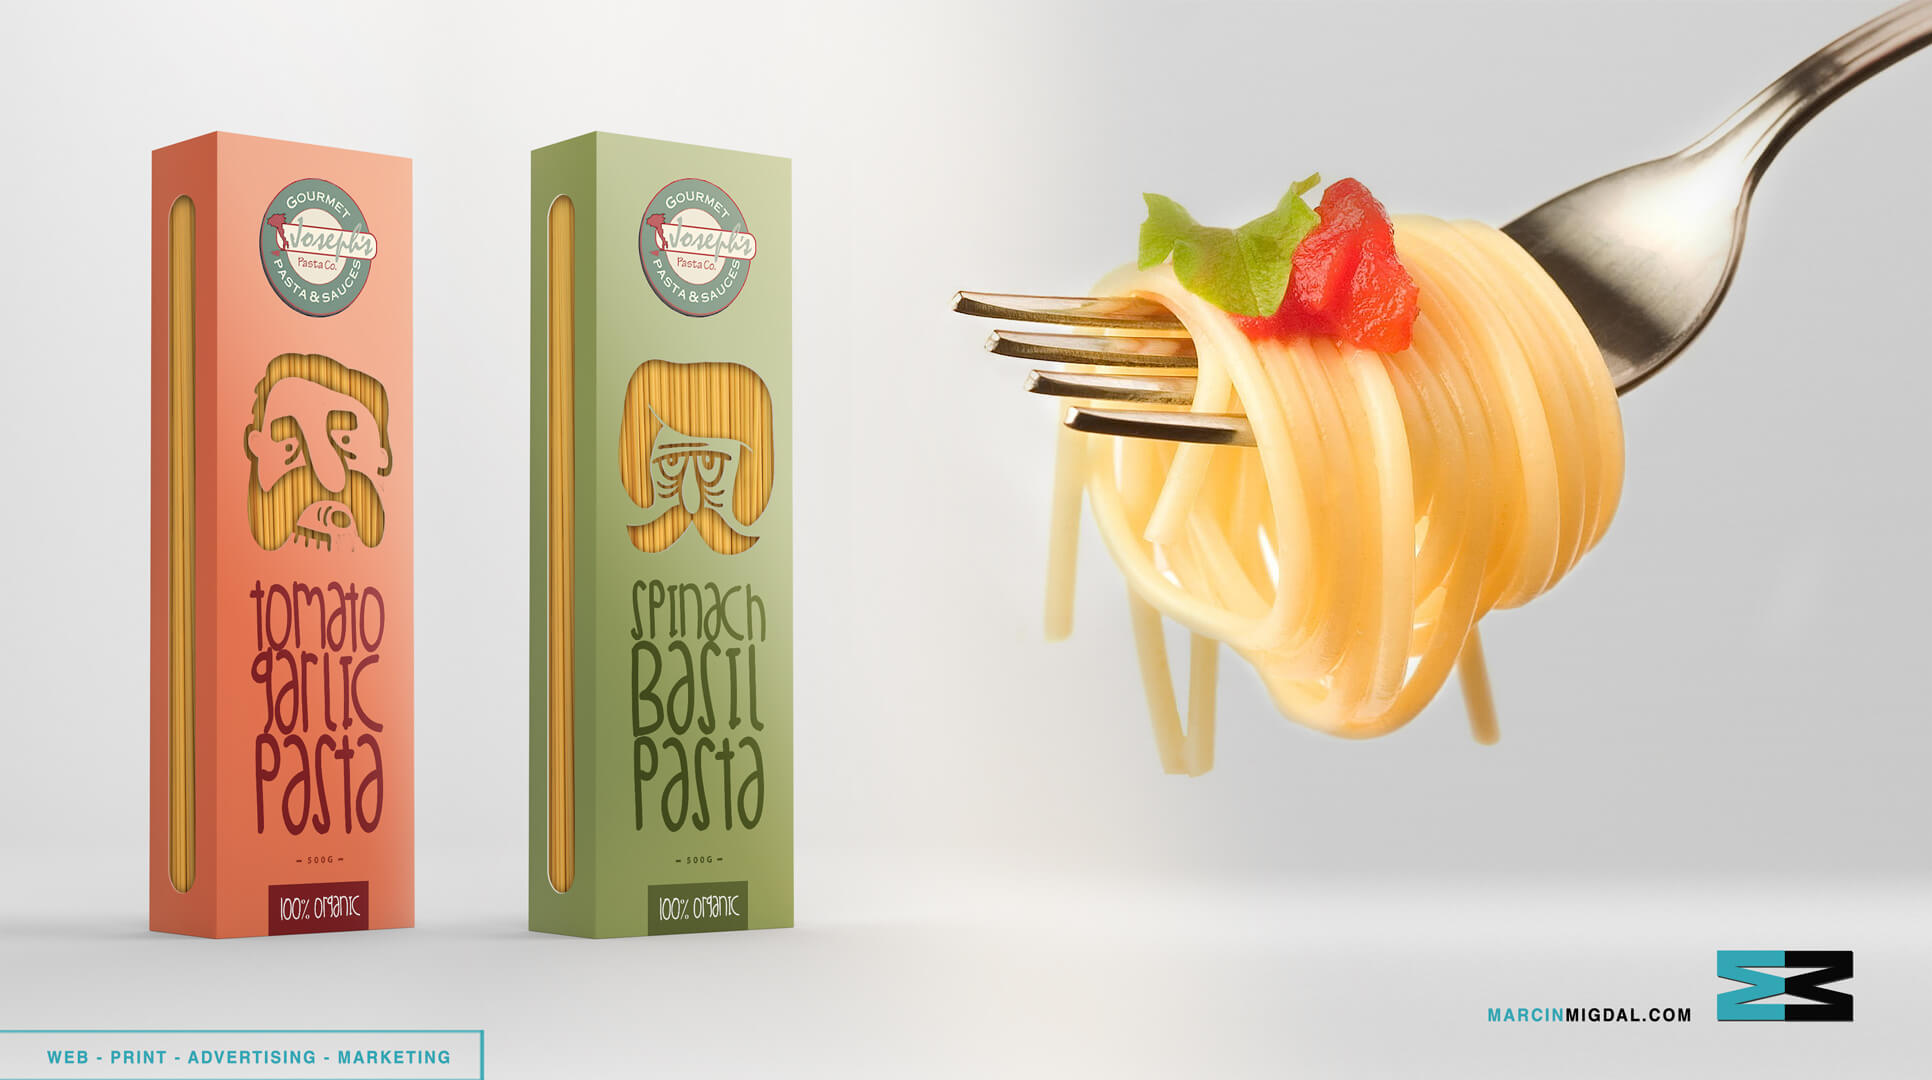 Pasta Boxes Concept by Marcin Migdal